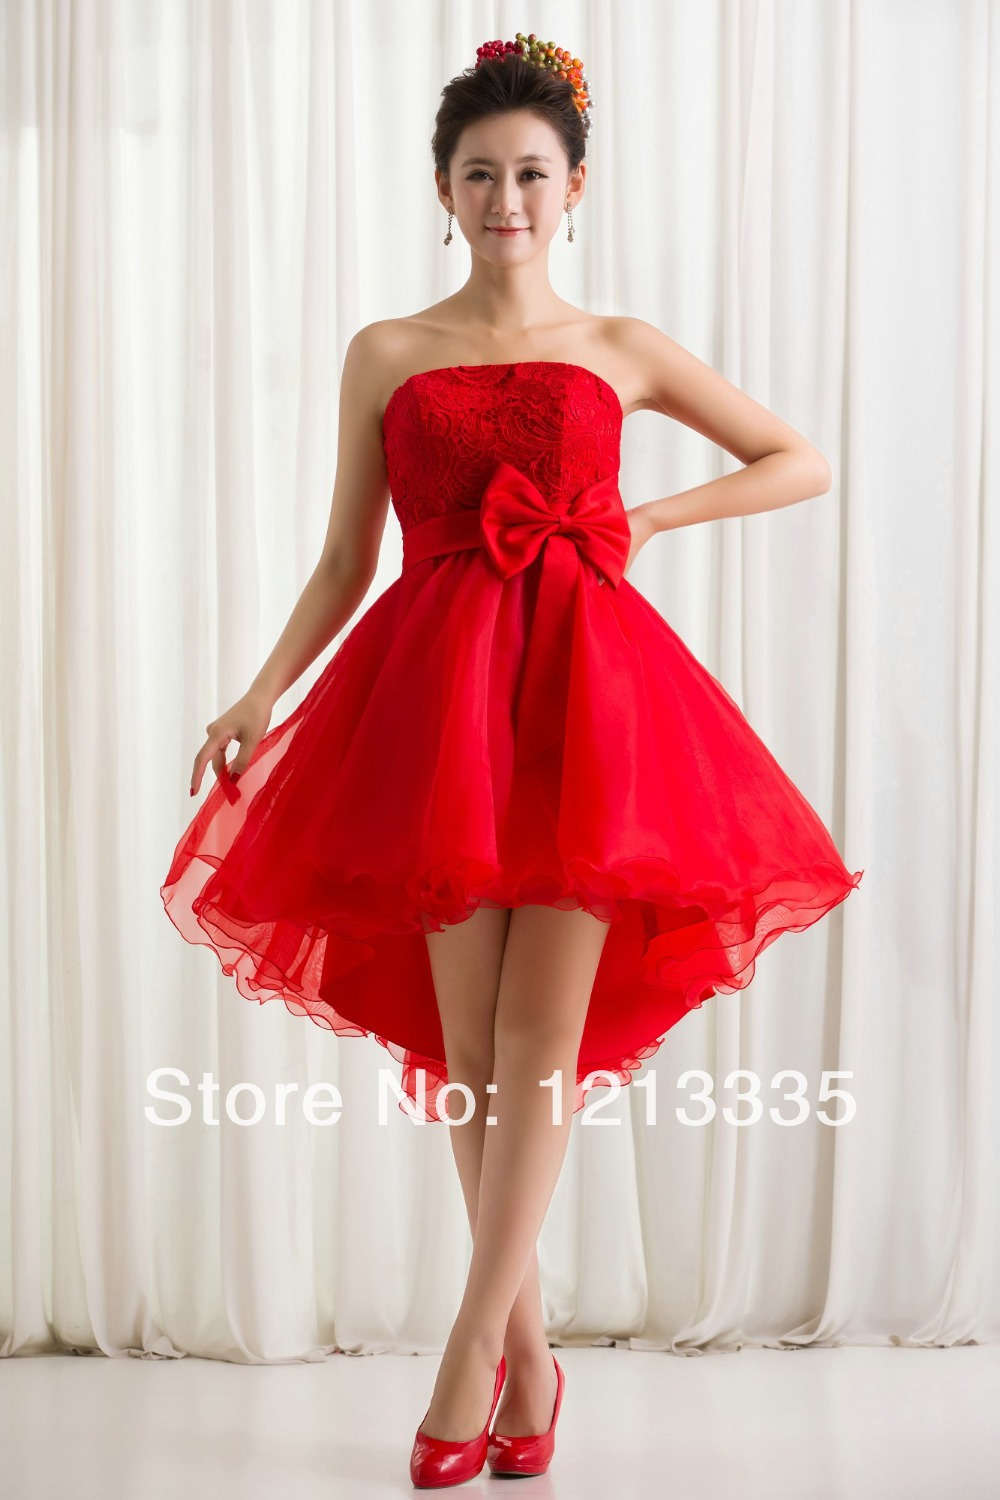 Aliexpress.com : Buy CD8799 2014 red organza lace boob tube top ...